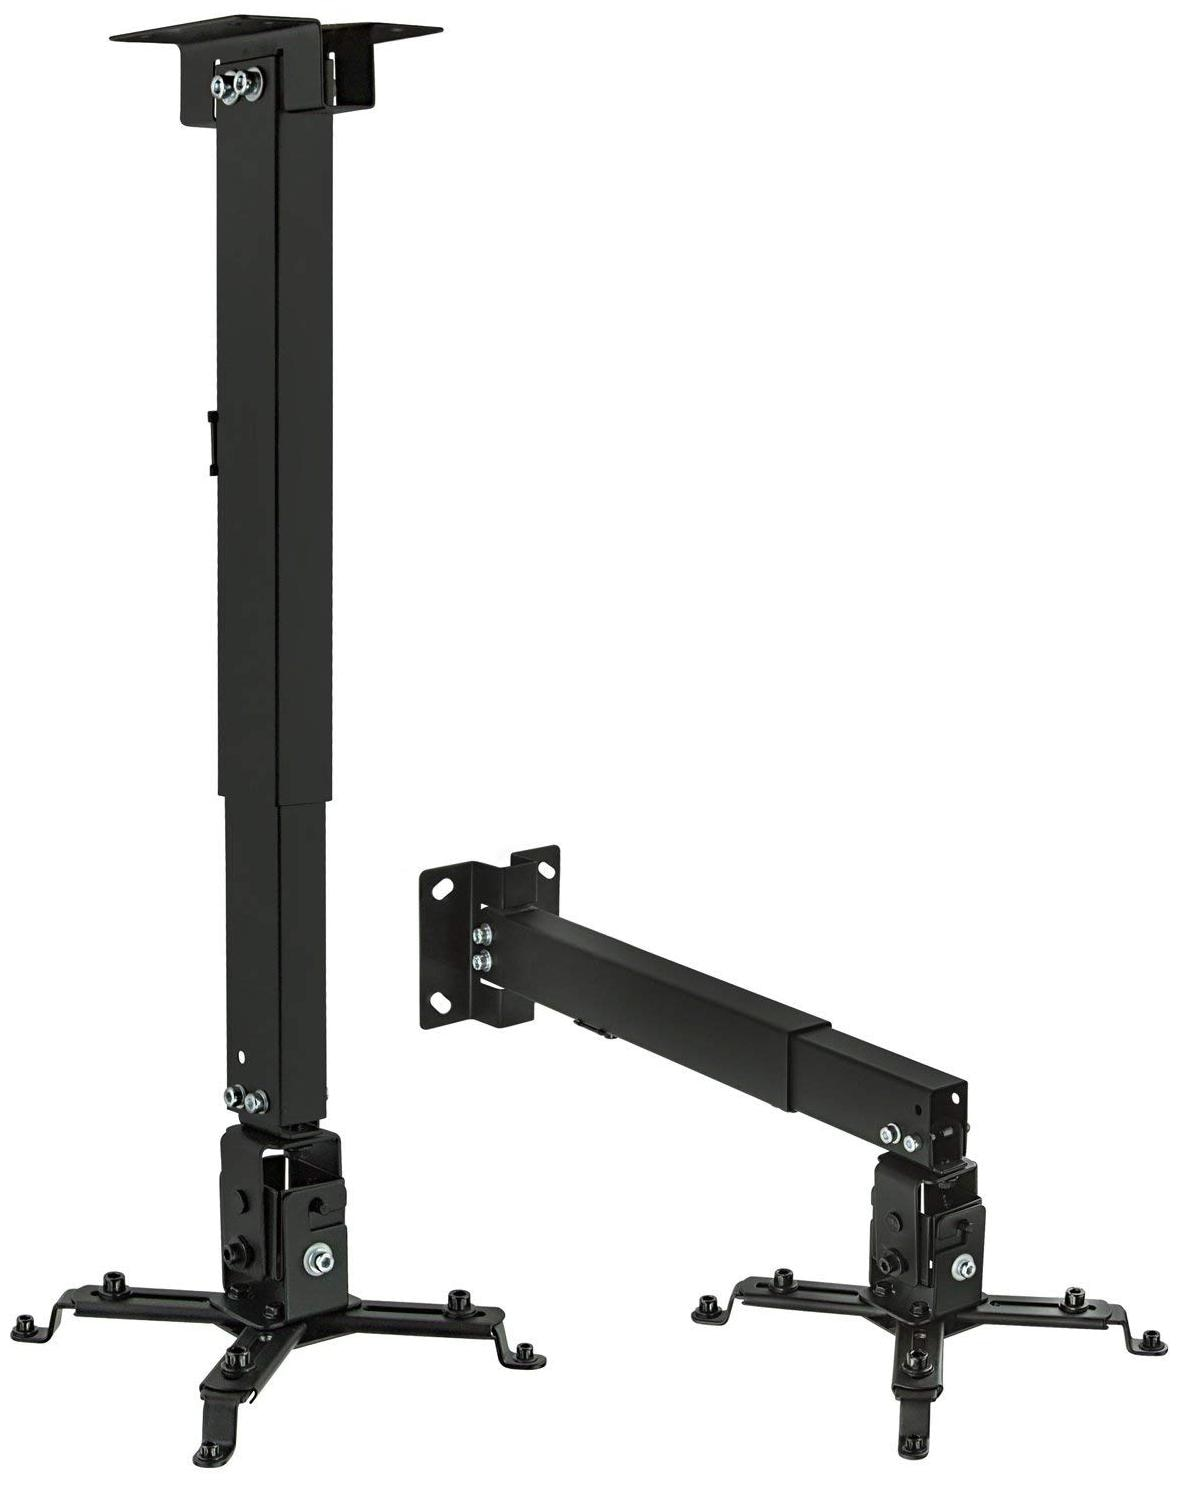 Tech Gear 6 Feet Long Ceiling Mount Kit Projector Stand Height Adjustable Projector Bracket Ceiling Mount for Projector